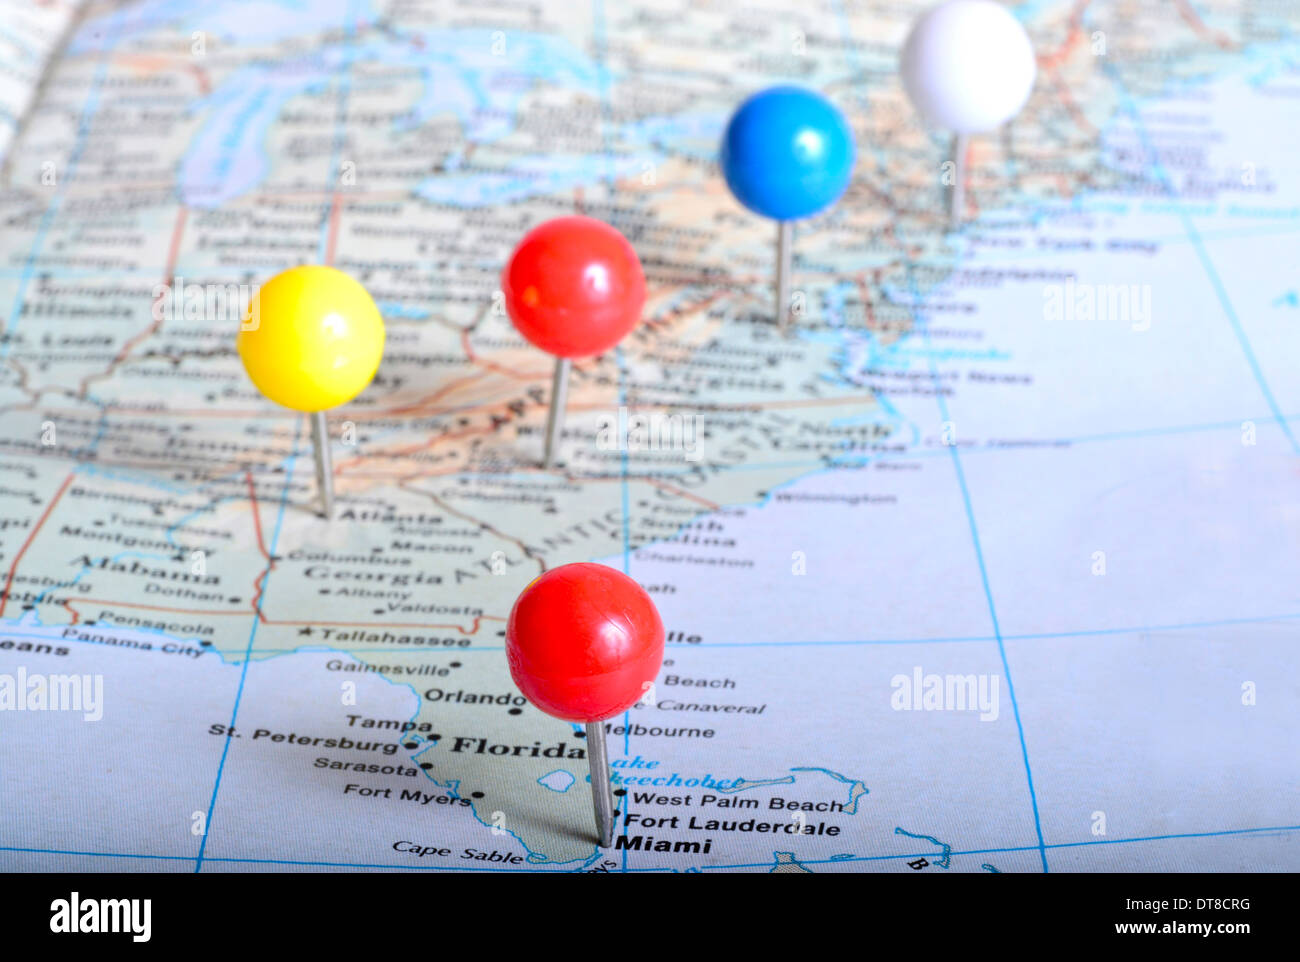 Map Of Eastern Us With Pin Tags On It Placed On Major Cities Stock Photo Alamy